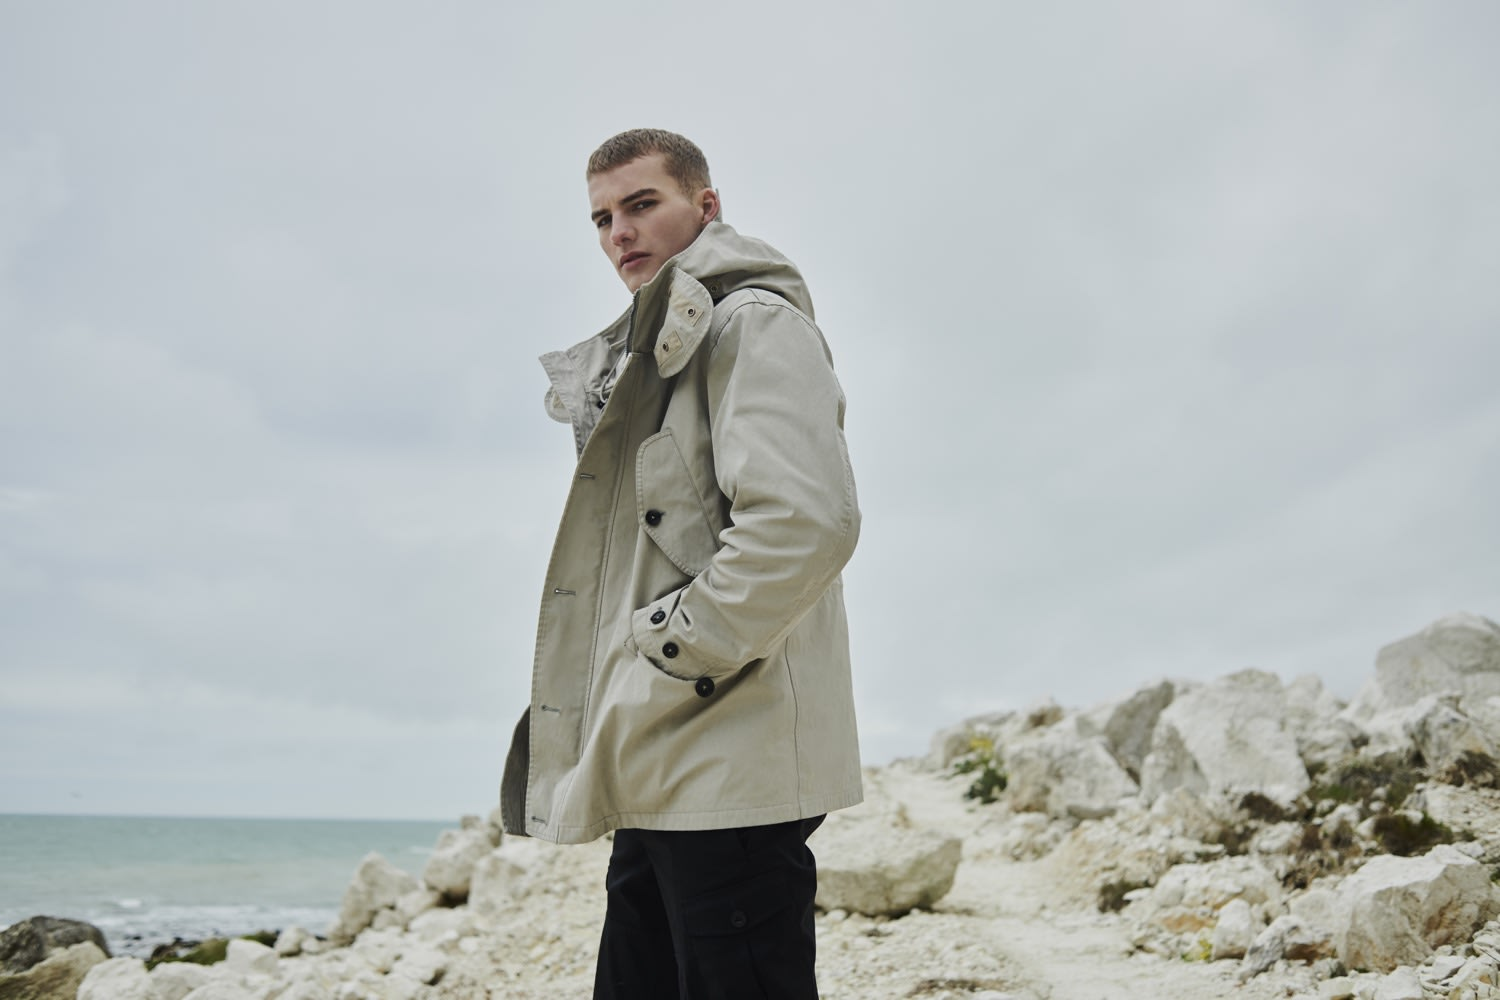 Ten C Look Beyond The Present with their AW21 Look Book